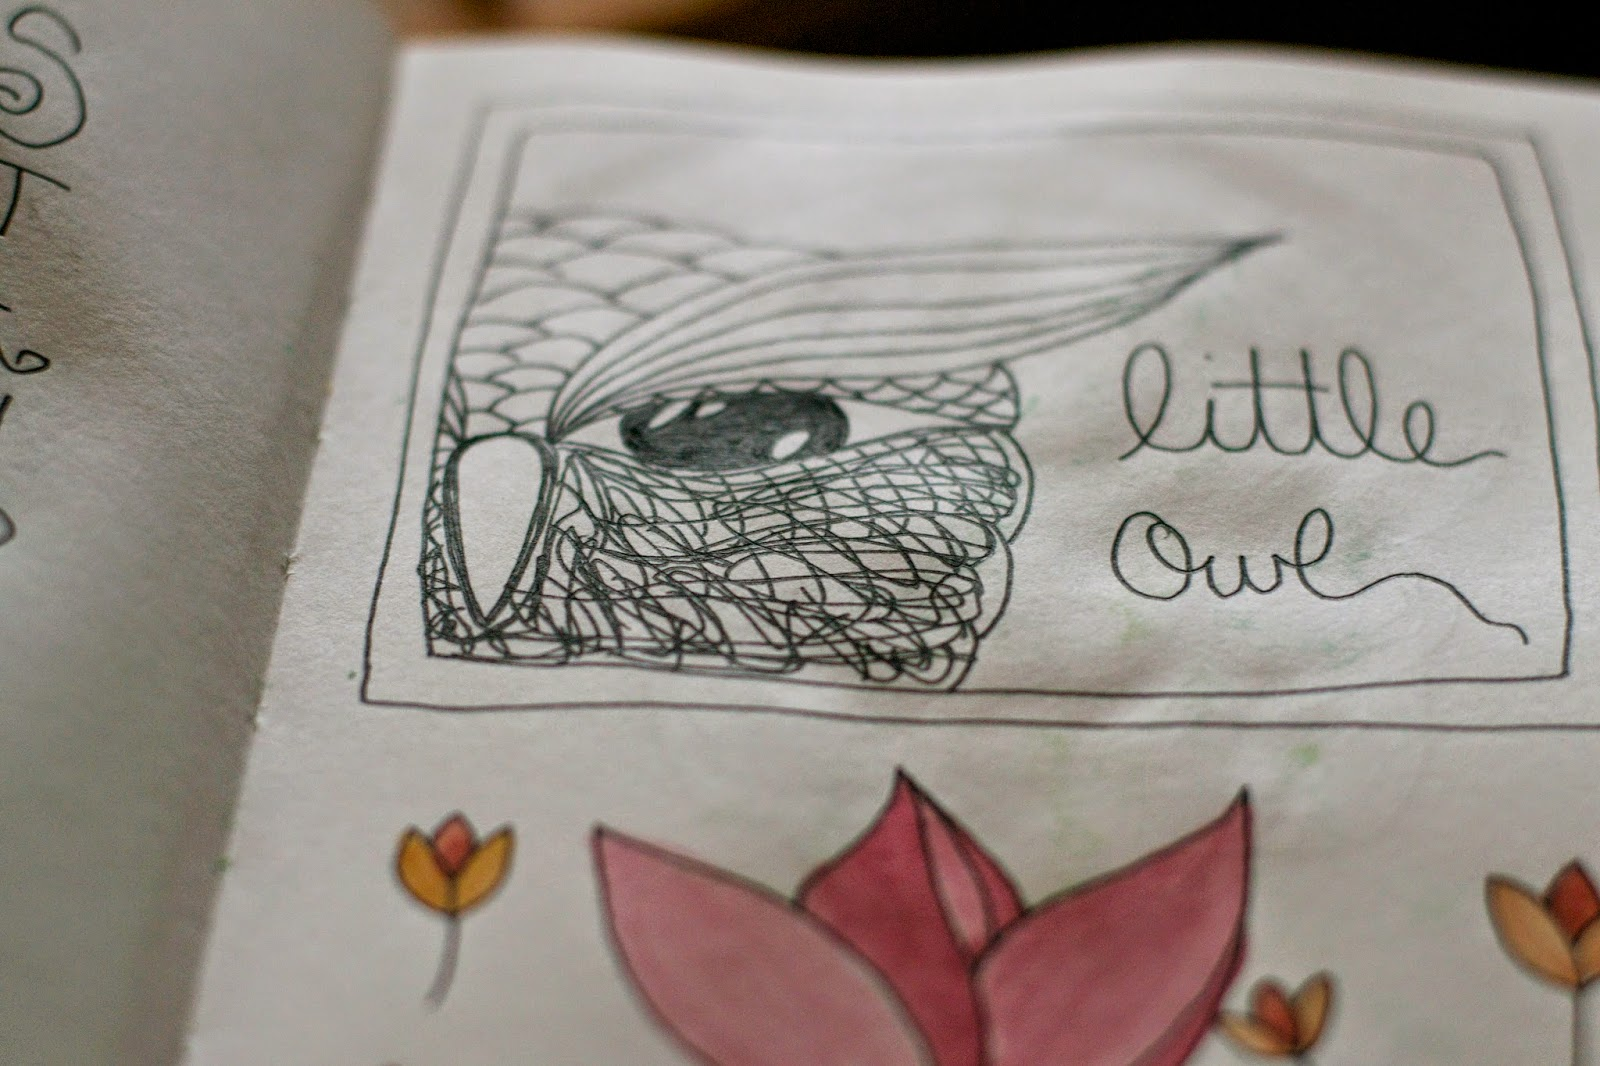 Sketchbook peek: Little owl logo design and doodling flowers.